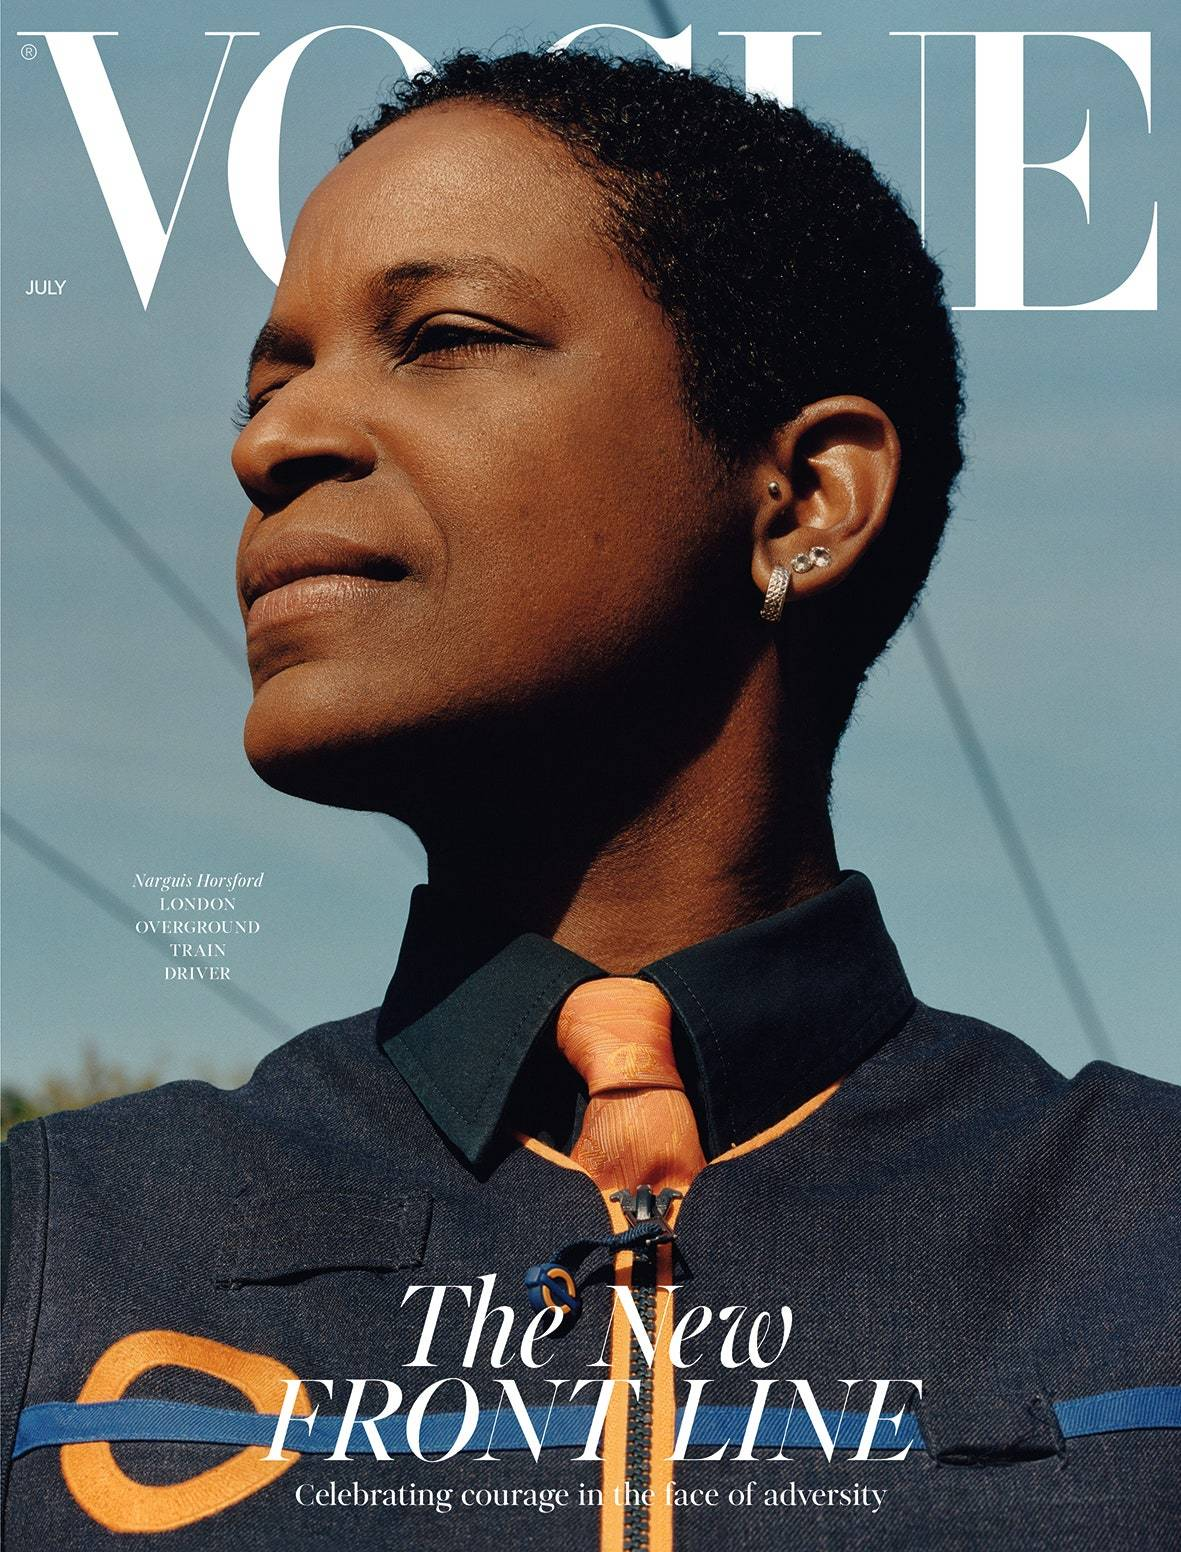 vogue-july-2020-cover-frontline-workers